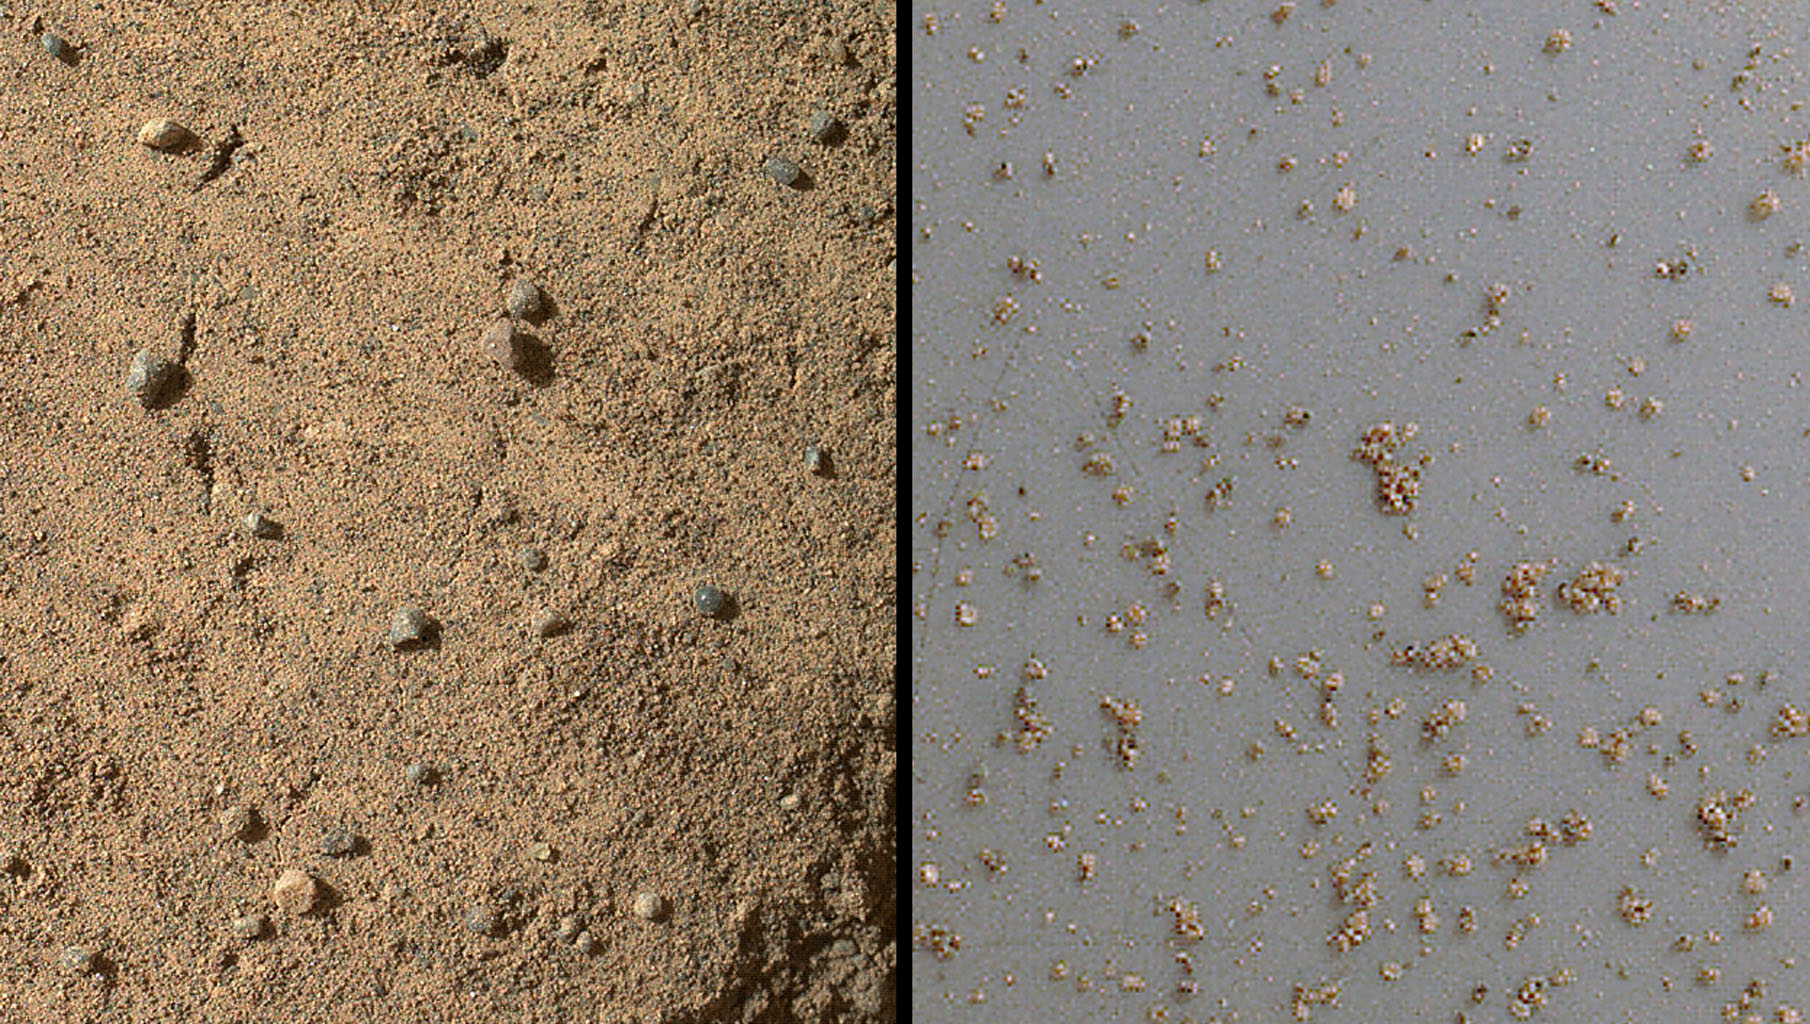 NASA's Mars rover Curiosity acquired close-up views of sands in the 'Rocknest' wind drift to document the nature of the material that the rover scooped, sieved and delivered to the CheMin and SAM instruments in October and November 2012.